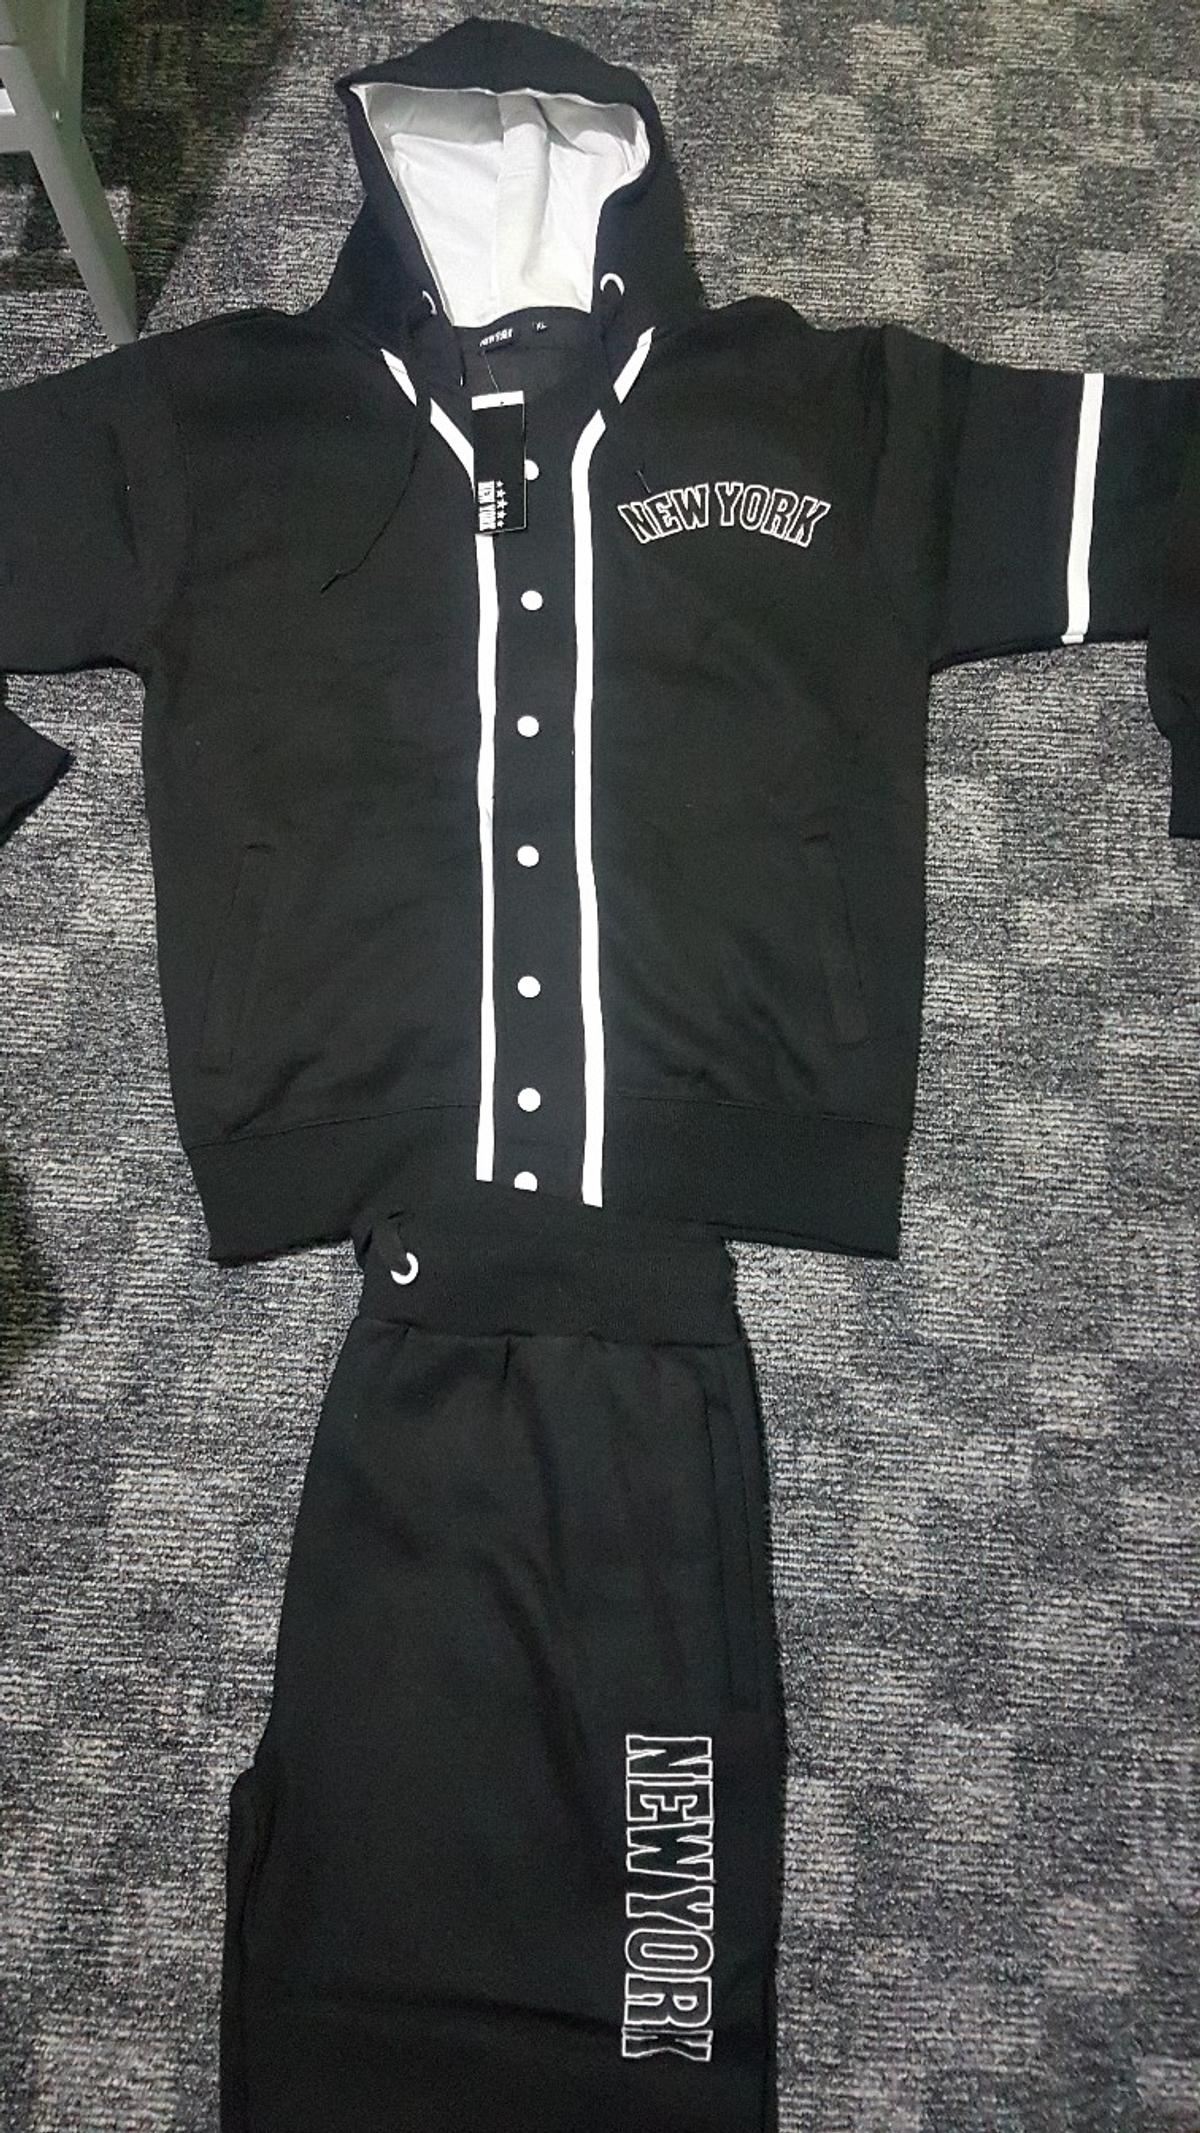 New York girls and mens tracksuite. Nice and warm. Brand new. Sizes available XL Hoodie with 2 side zipped pockets. Trouser with 2 side pockets and 1 back pocket. P&P AVAILABLE WITH EXTRA £3.50